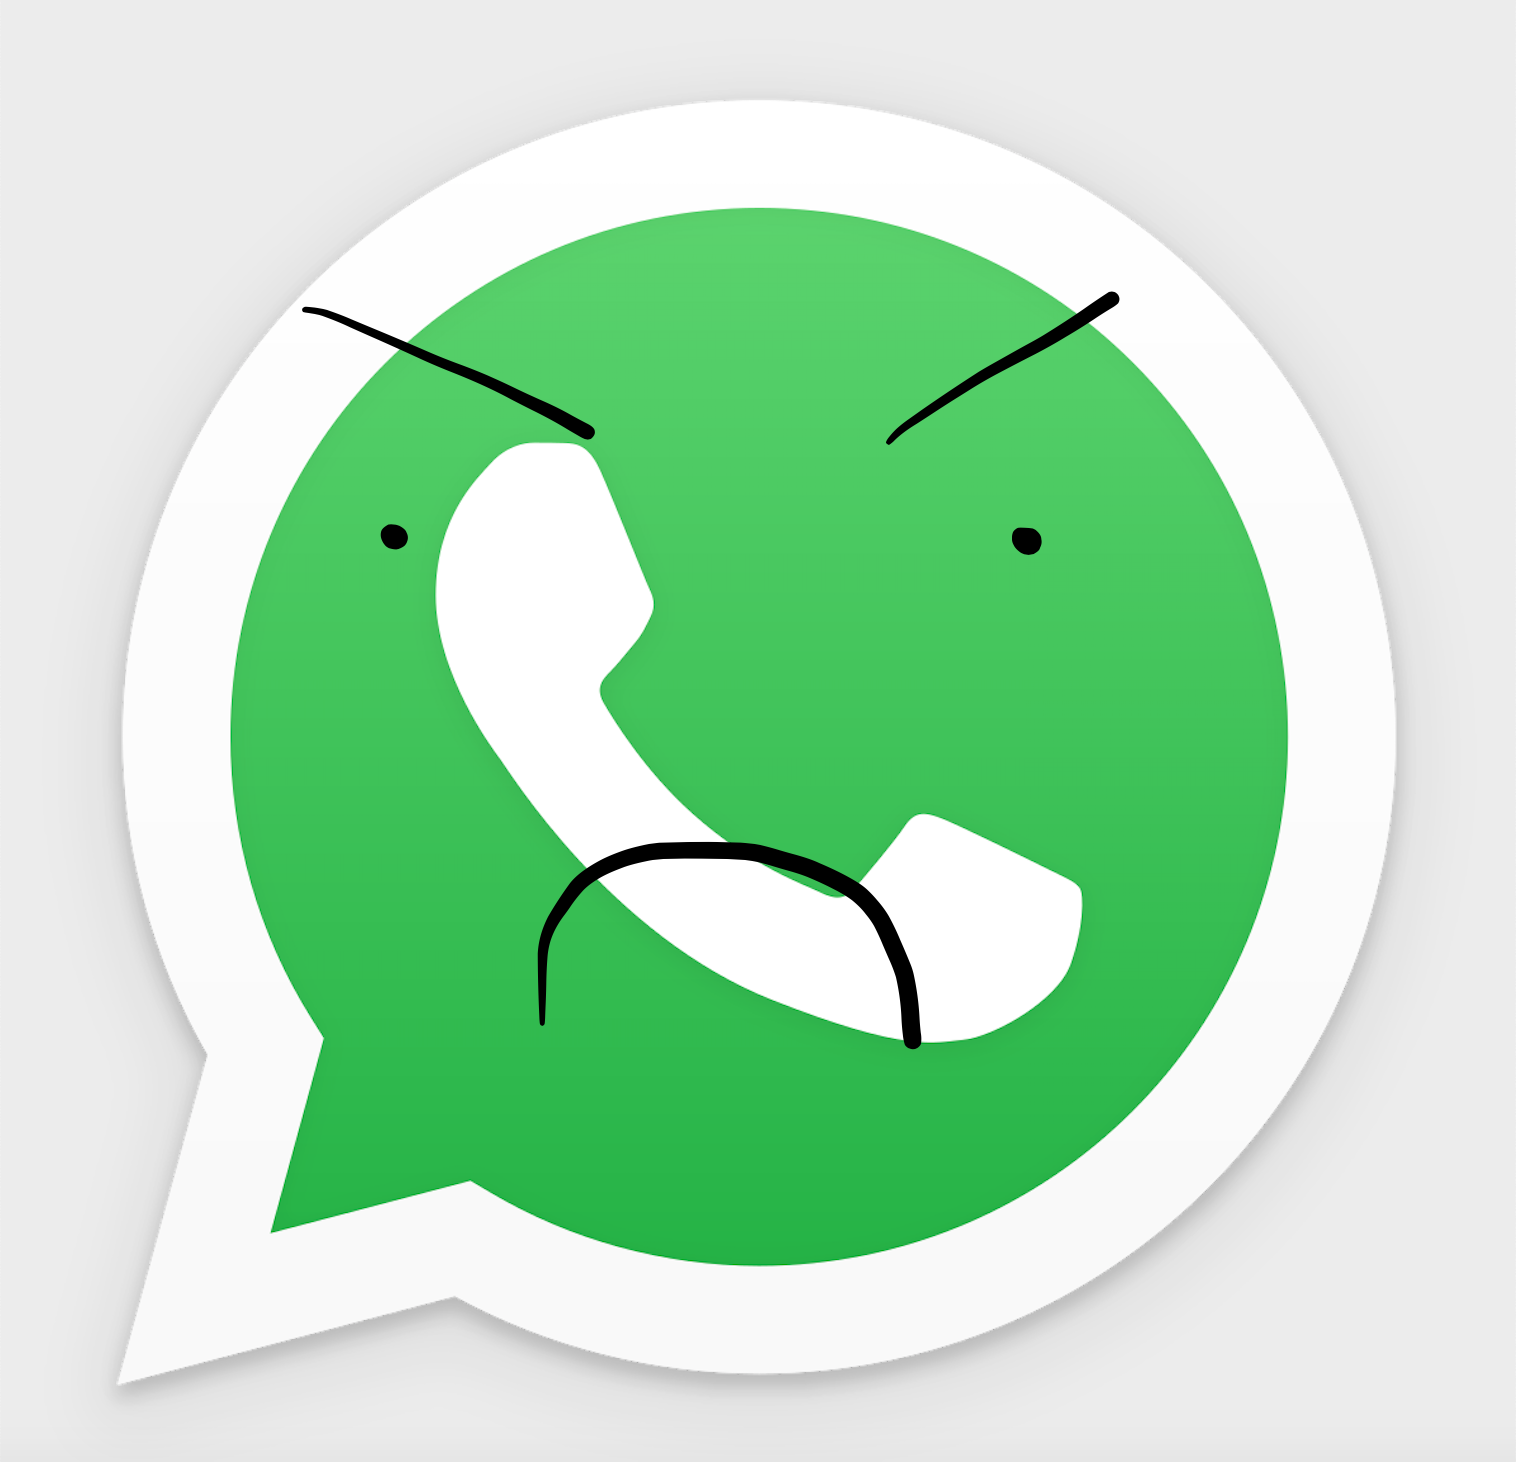 A picture of the WhatsApp logo (a chat bubble with a phone in it). A crude frowny face has been drawn over it in black